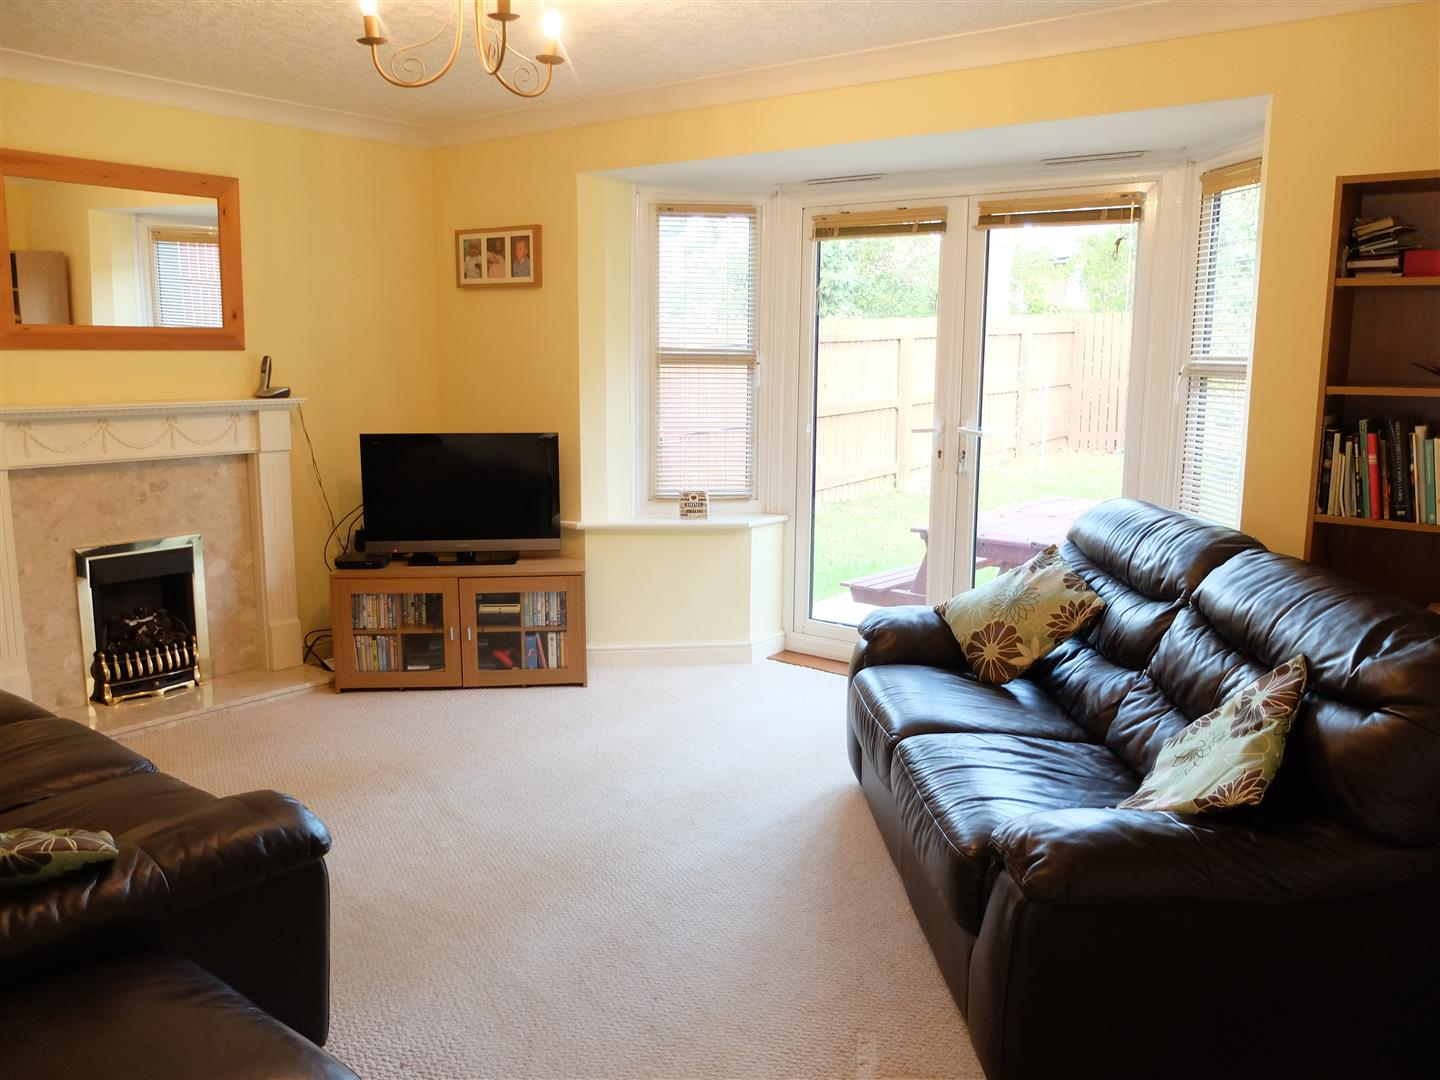 4 Bedrooms House - Detached For Sale 4 Chertsey Grove Carlisle